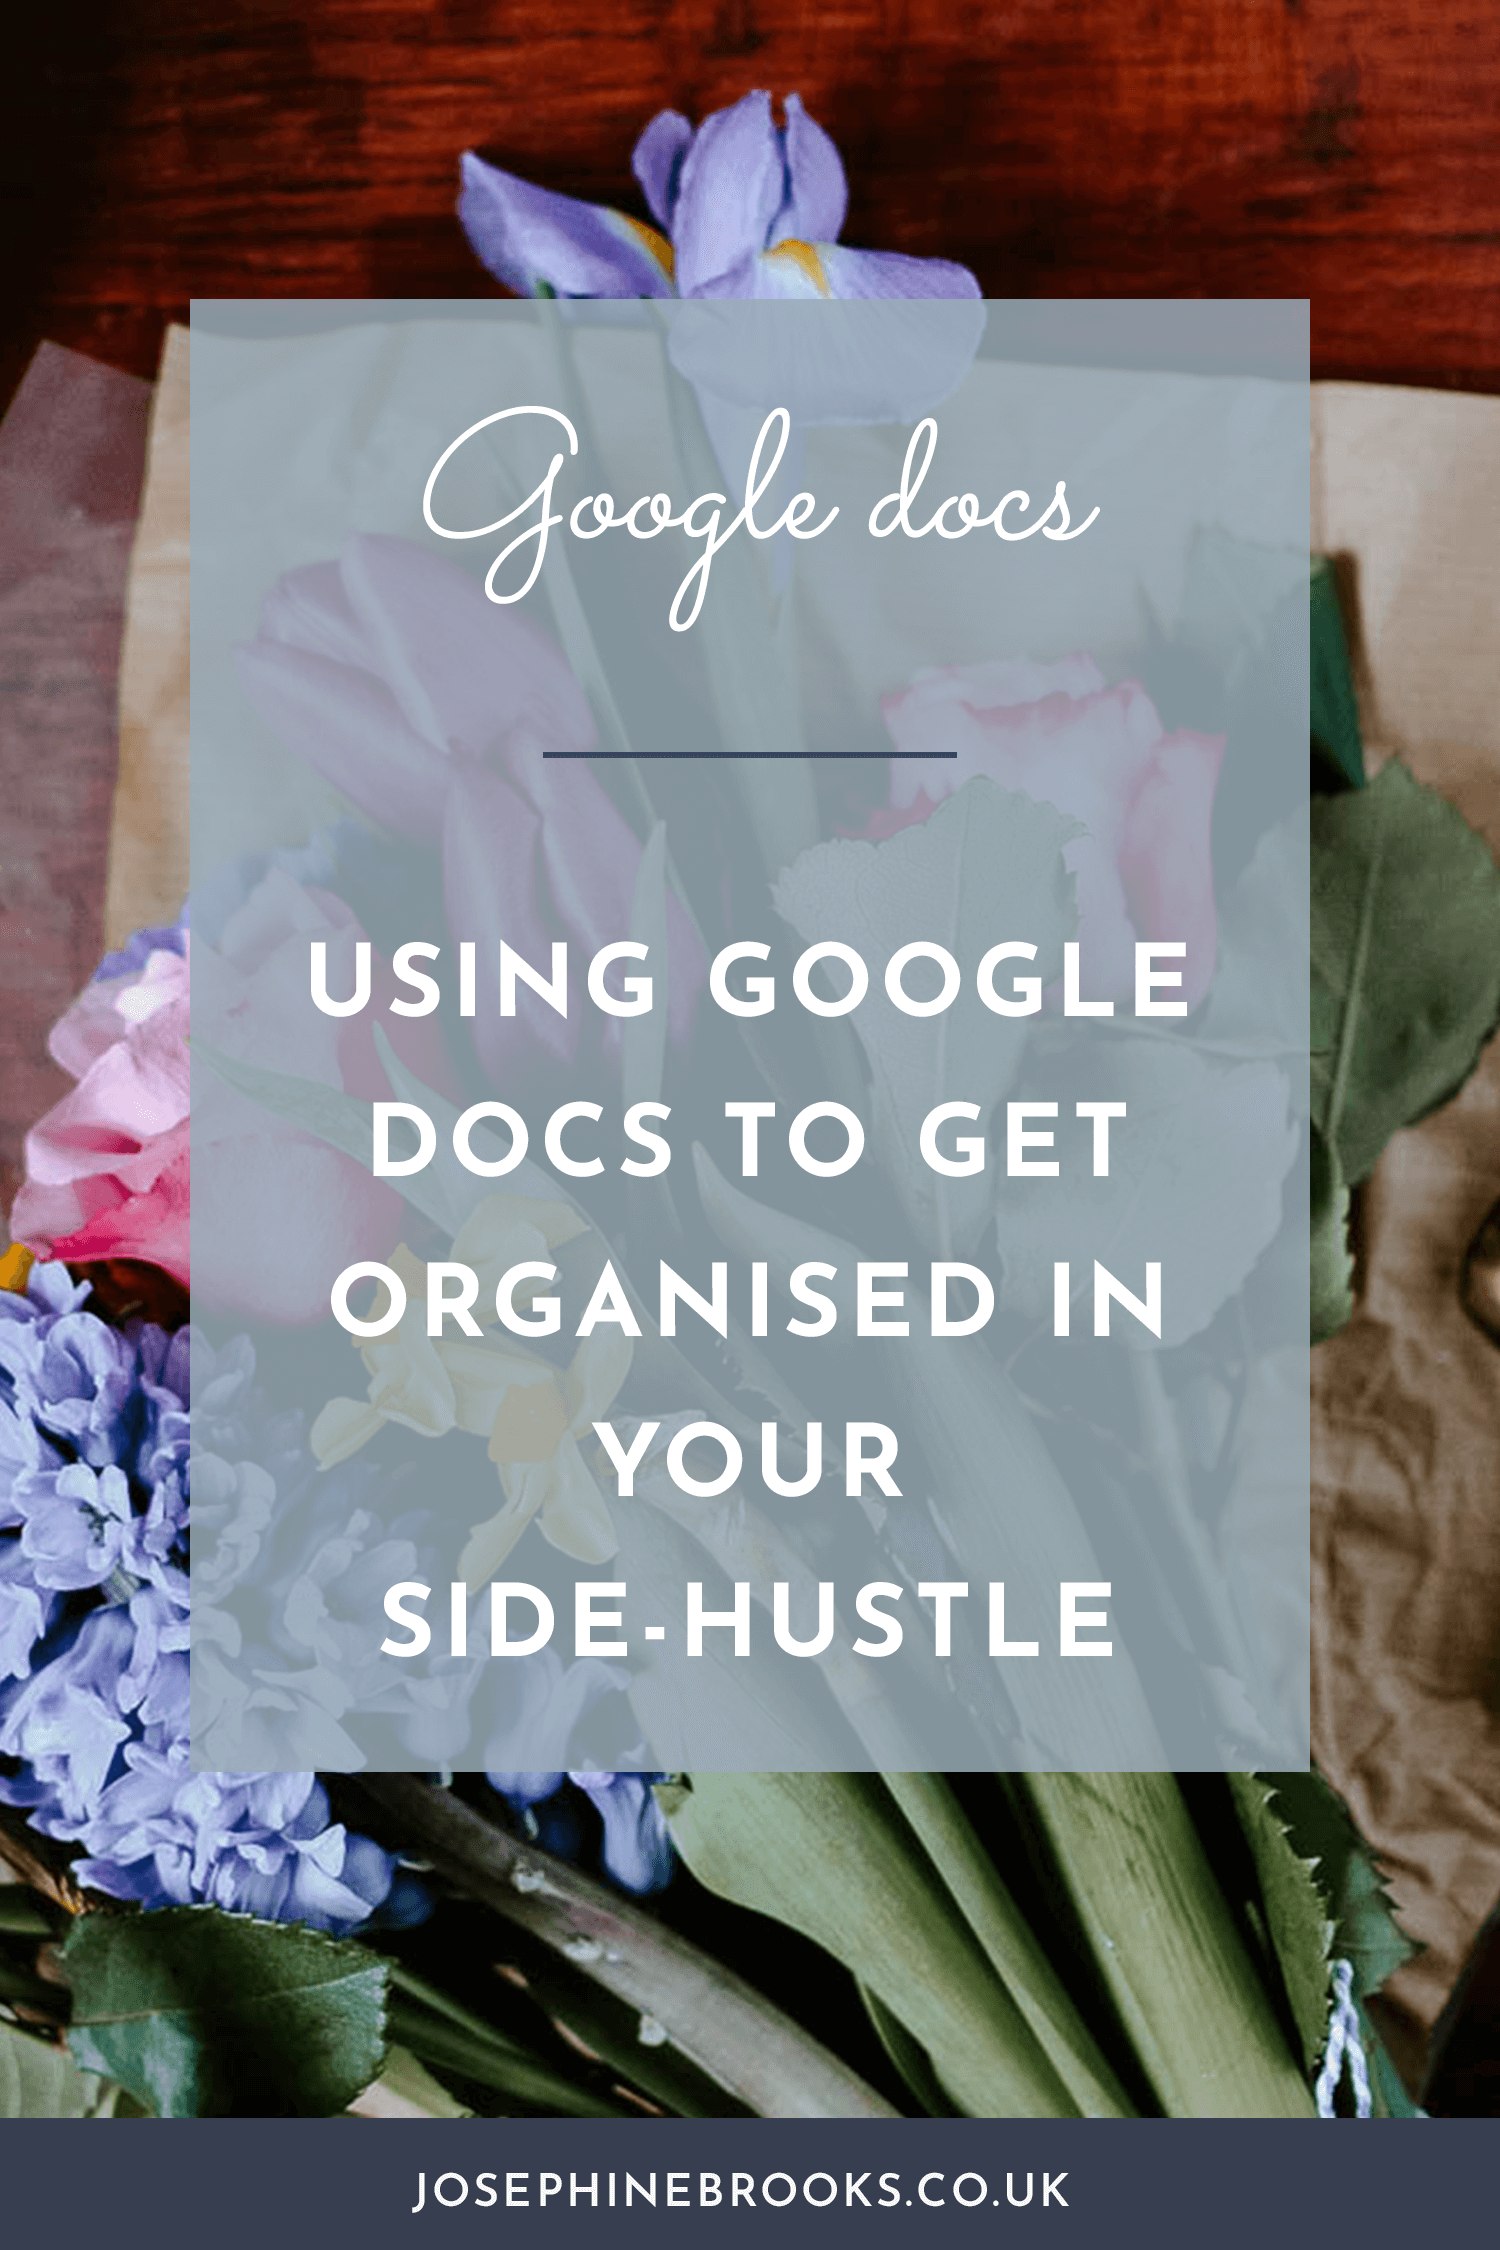 Using google docs to get organised in your side-hustle, How to use google docs for your side hustle, Organising a side-hustle using google docs, Time management tips for side-hustlers   Josephine Brooks